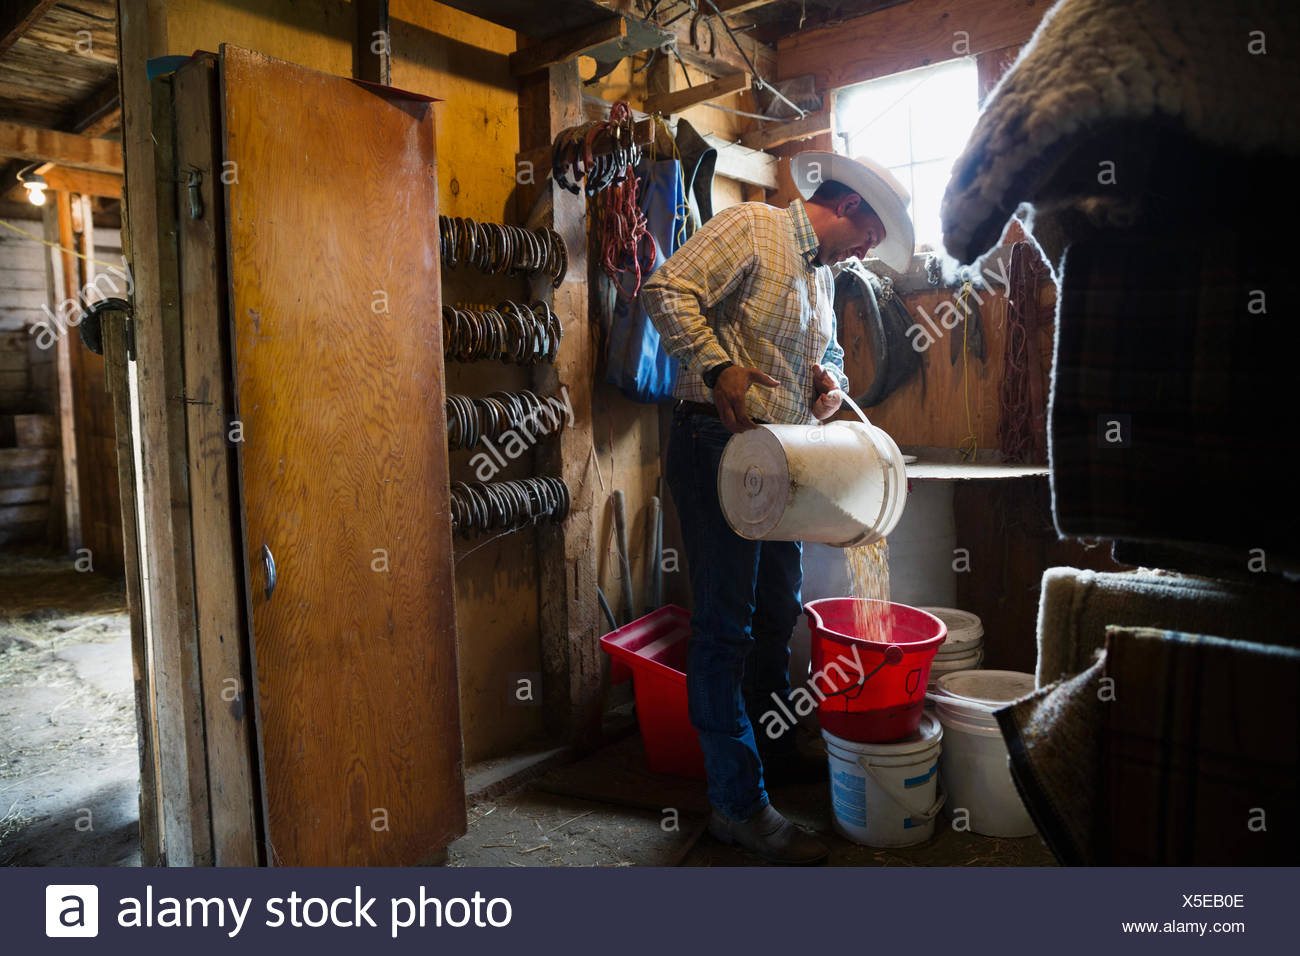 Rancher filling bucket with grains in barn - Stock Image